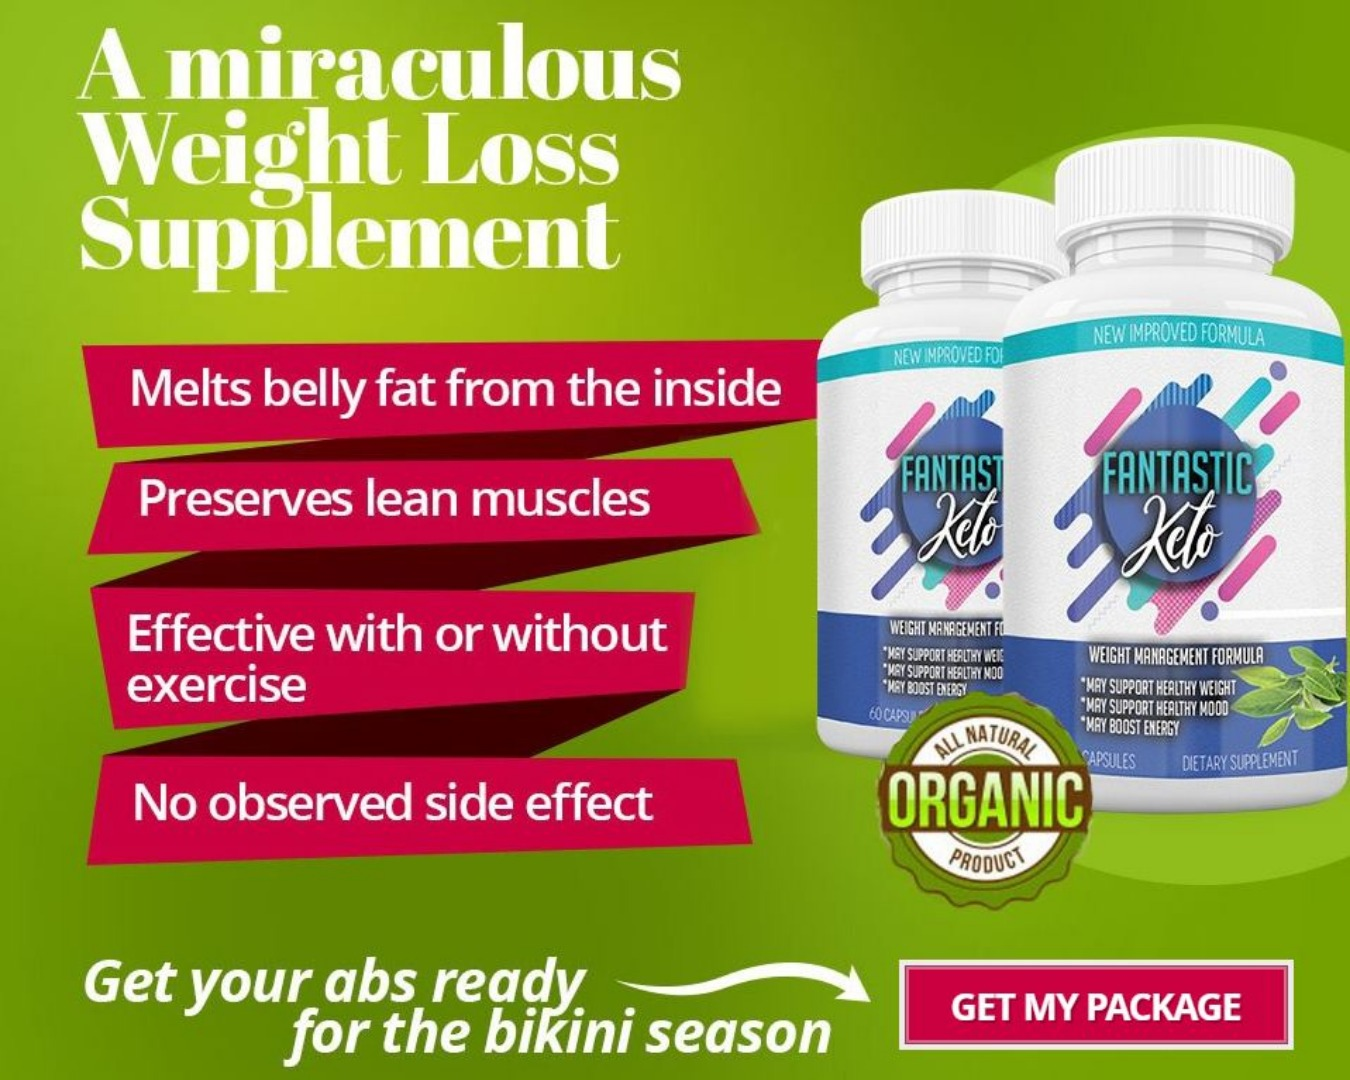 Fantastic Keto Read Reviews Weight Loss Diet Pills Buy Store Tickets By Fantastic Keto 3 May 2019 New York Event